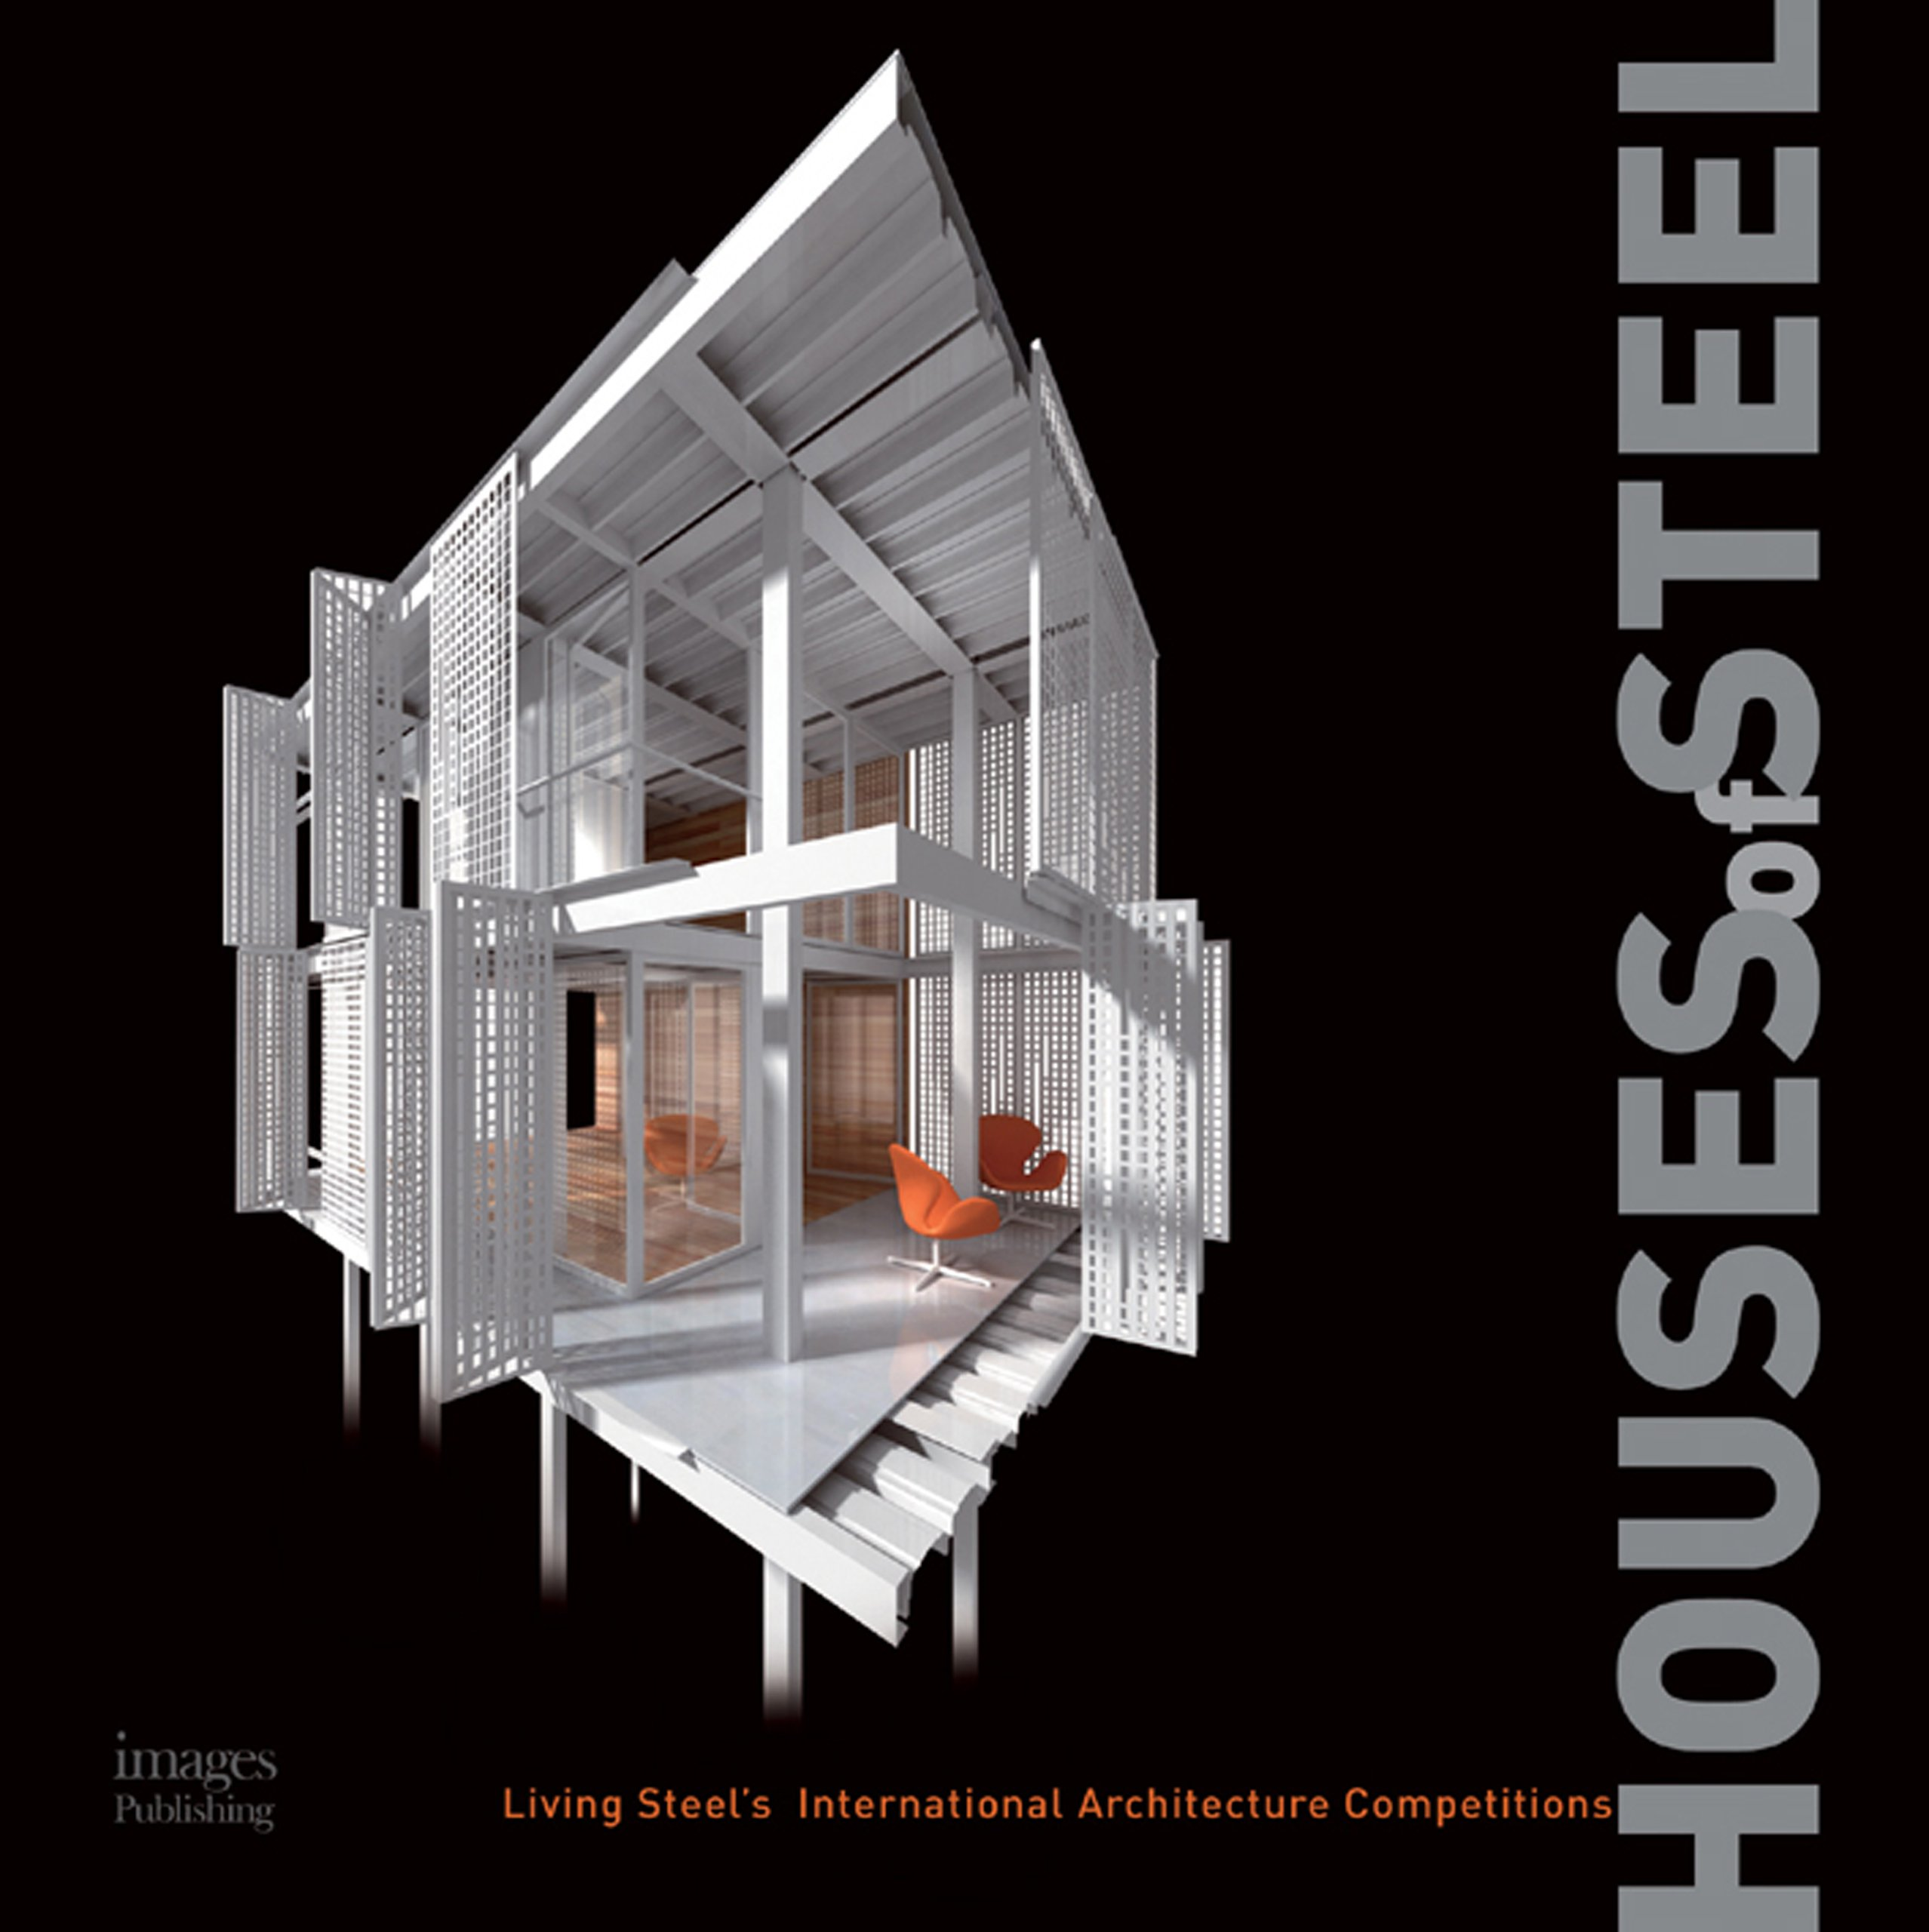 Houses of Steel: Living Steel's International Architecture Competitions